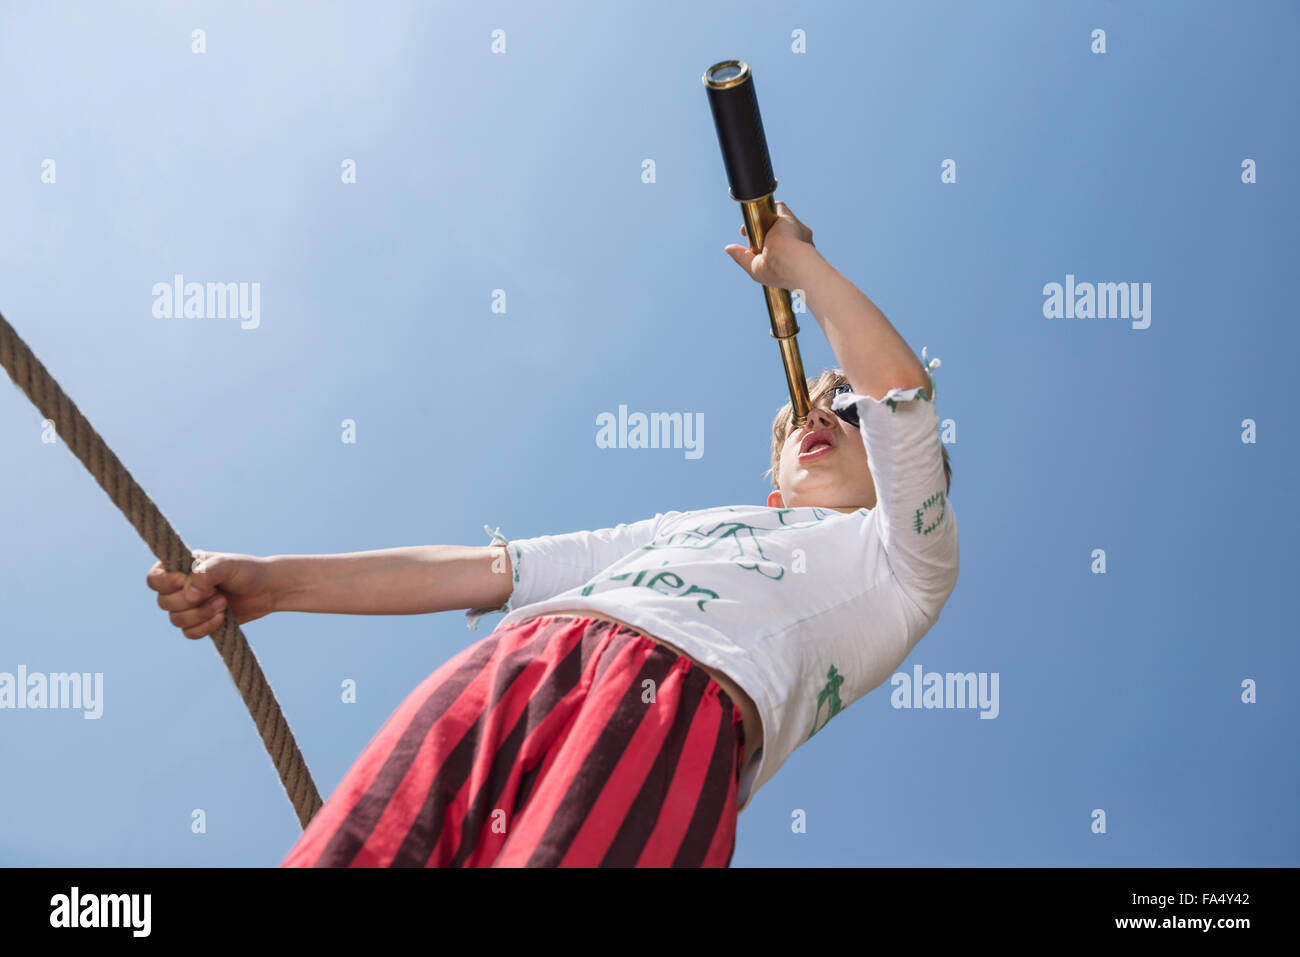 Boy standing on pirate ship in playground and looking through telescope, Bavaria, Germany - Stock Image